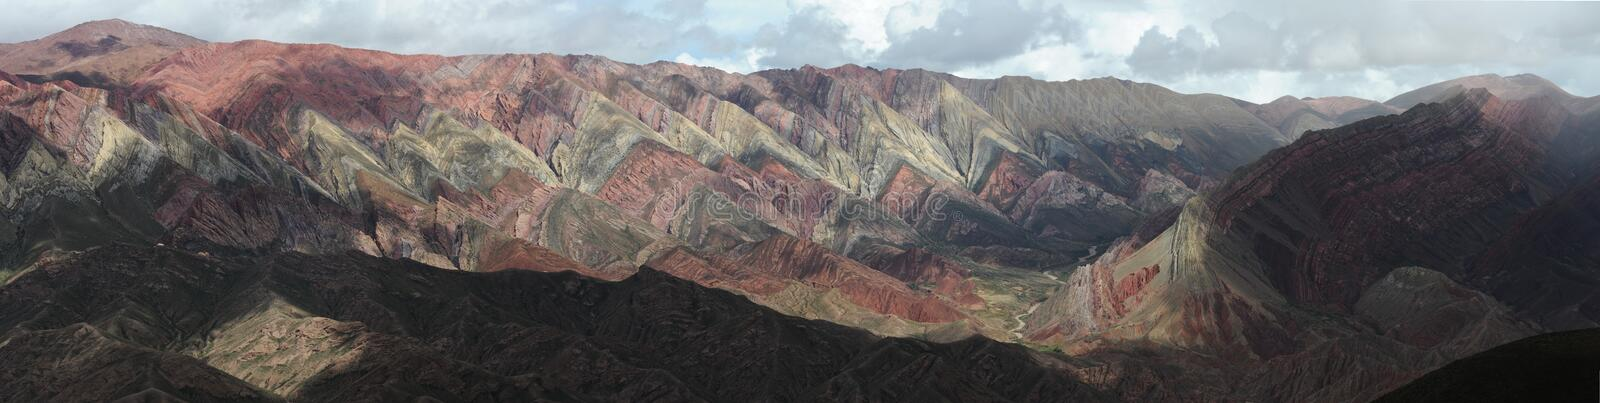 Download The Hornocal Massive Near Humahuaca On Argentina A Stock Image - Image of panoramic, view: 22196247